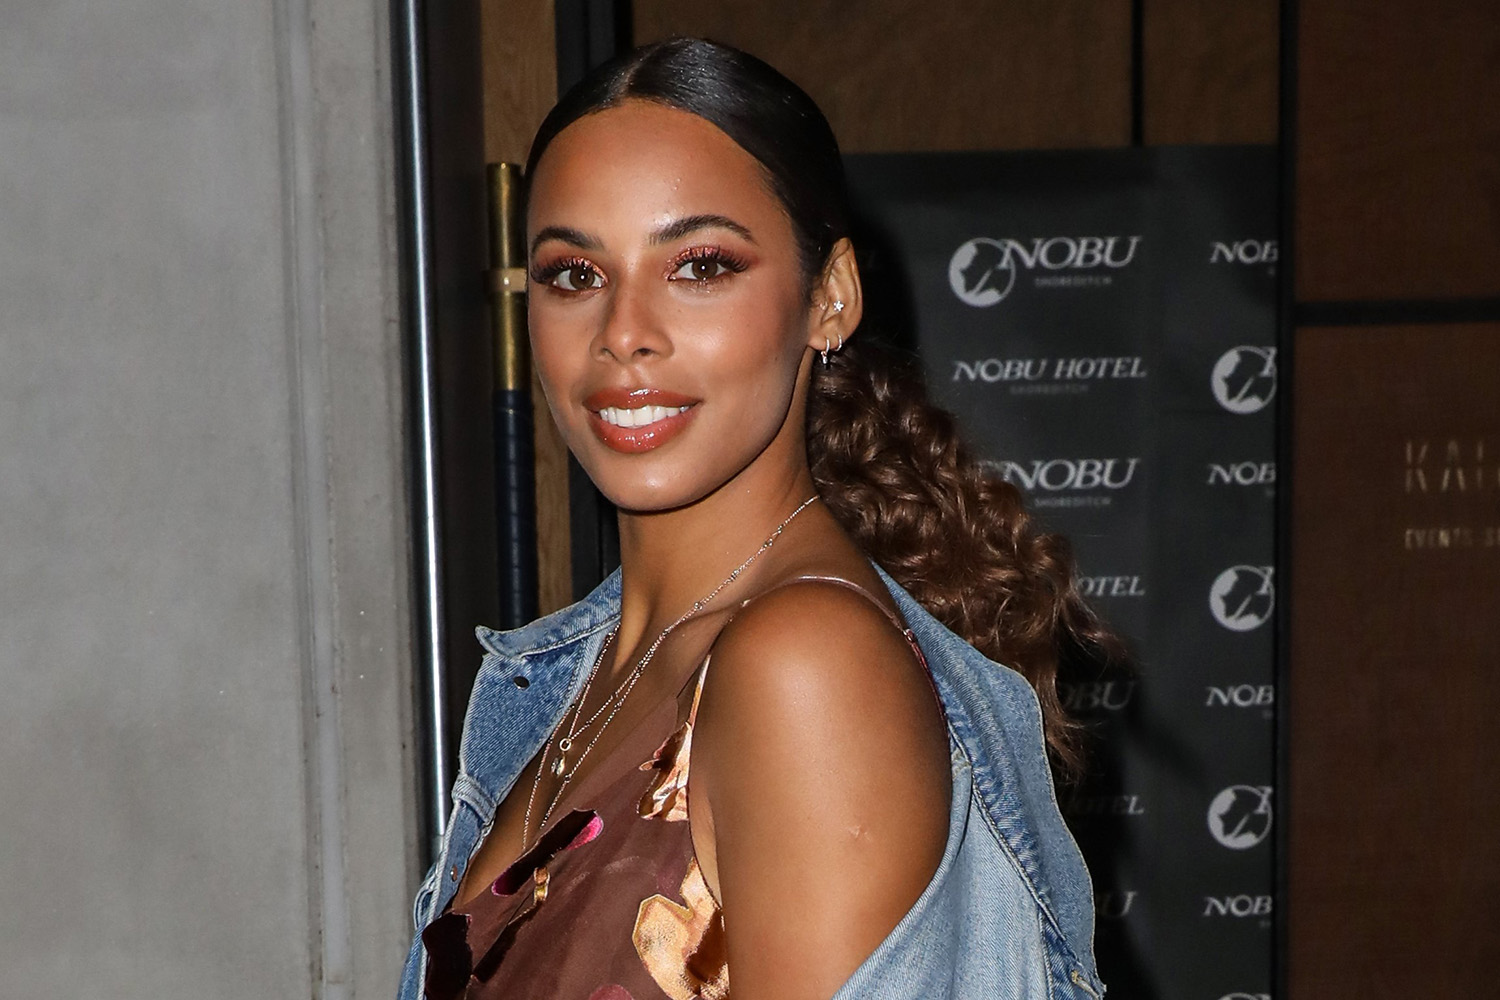 Pregnant Rochelle Humes shows off luxury £1,000 pram for unborn son